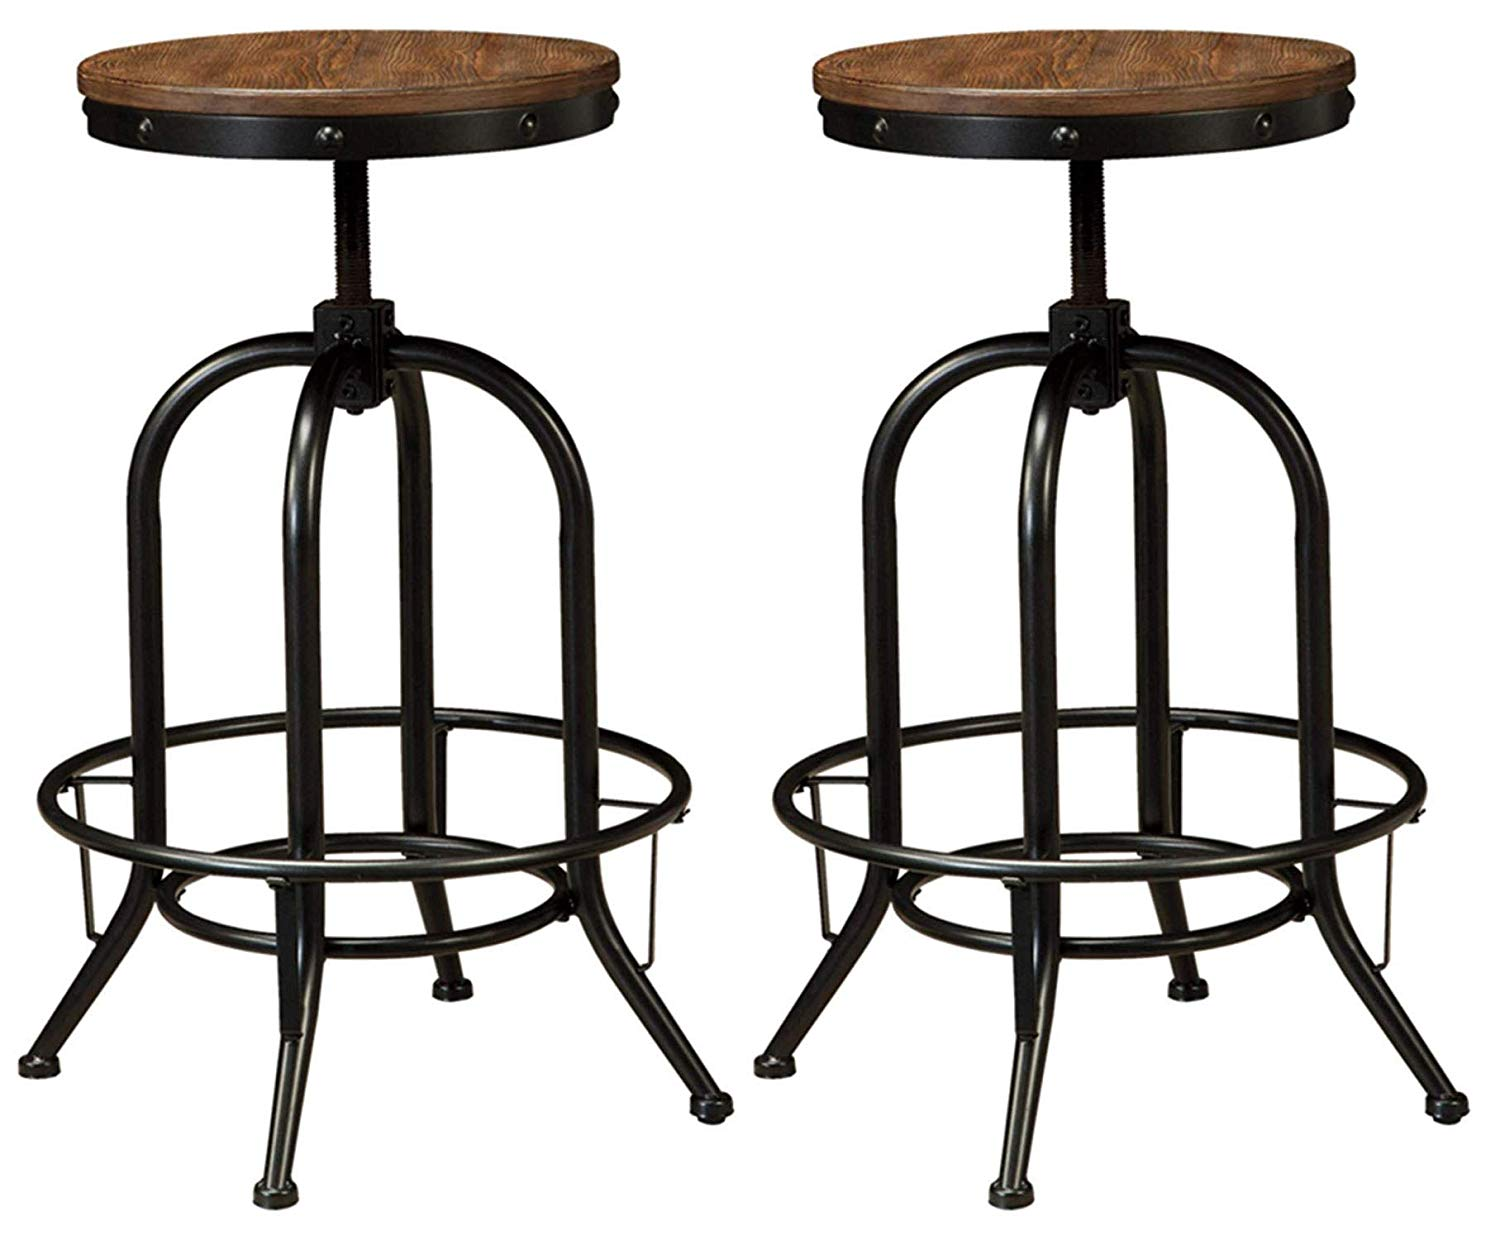 Ashley Furniture Signature Design - Pinnadel Bar Stool -Set of 2